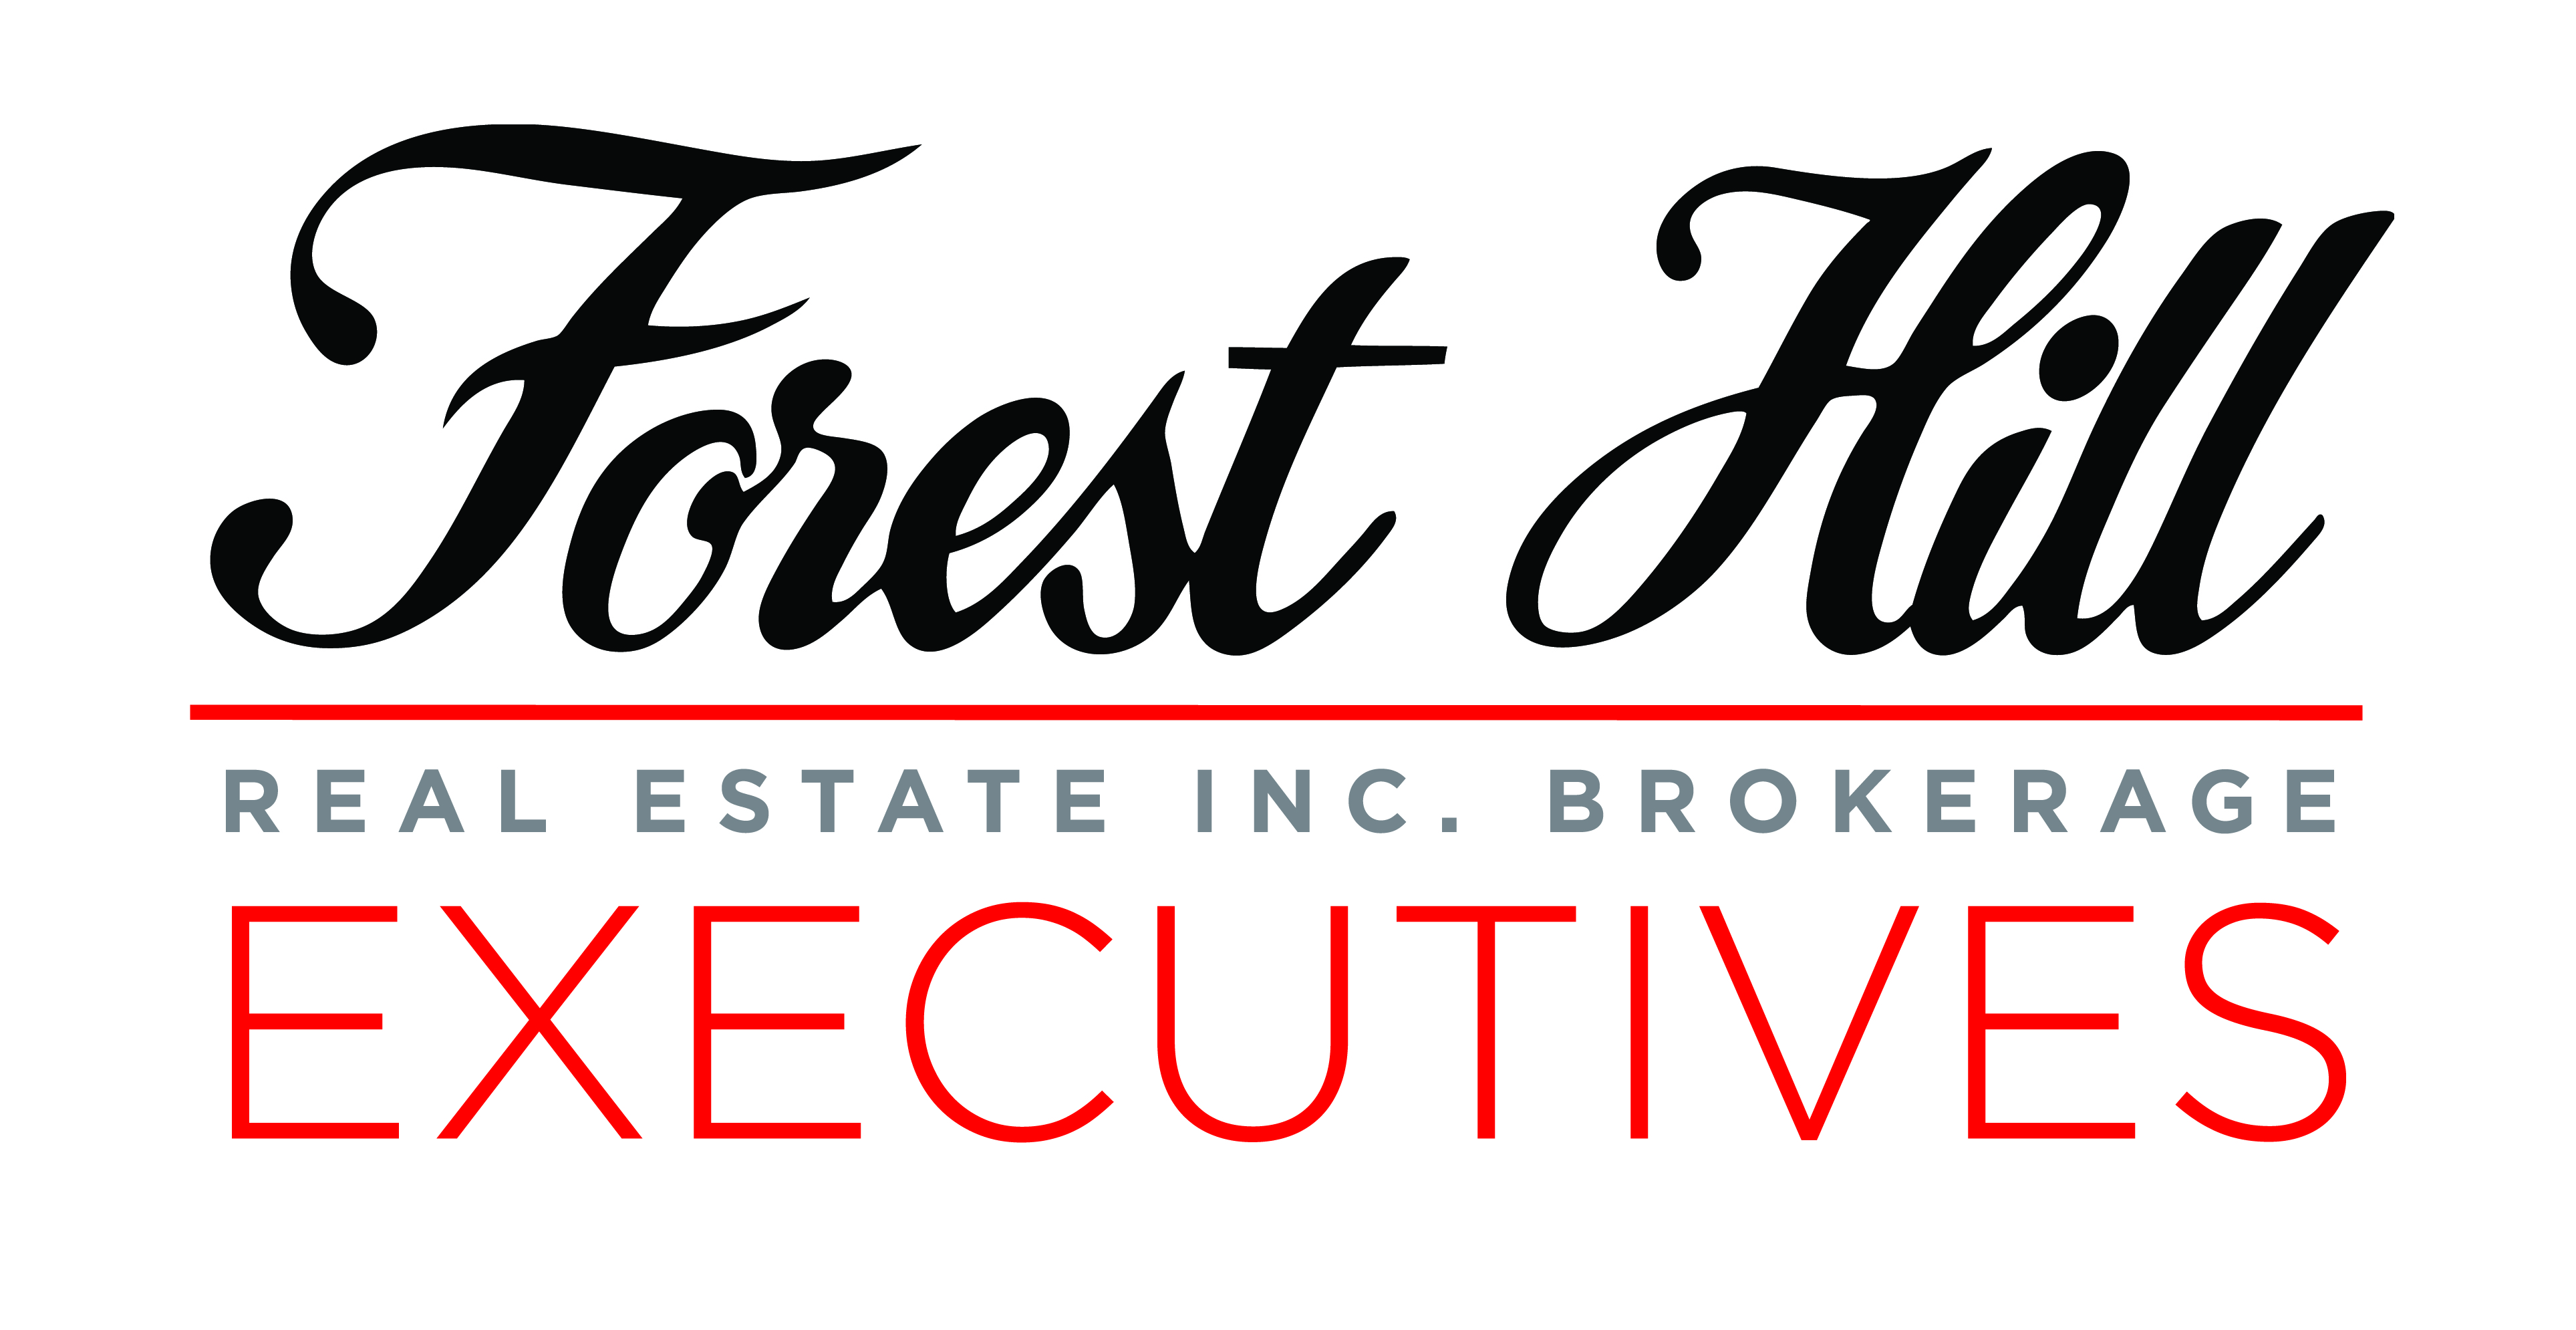 Forest Hill Real Estate Inc., Brokerage Executives